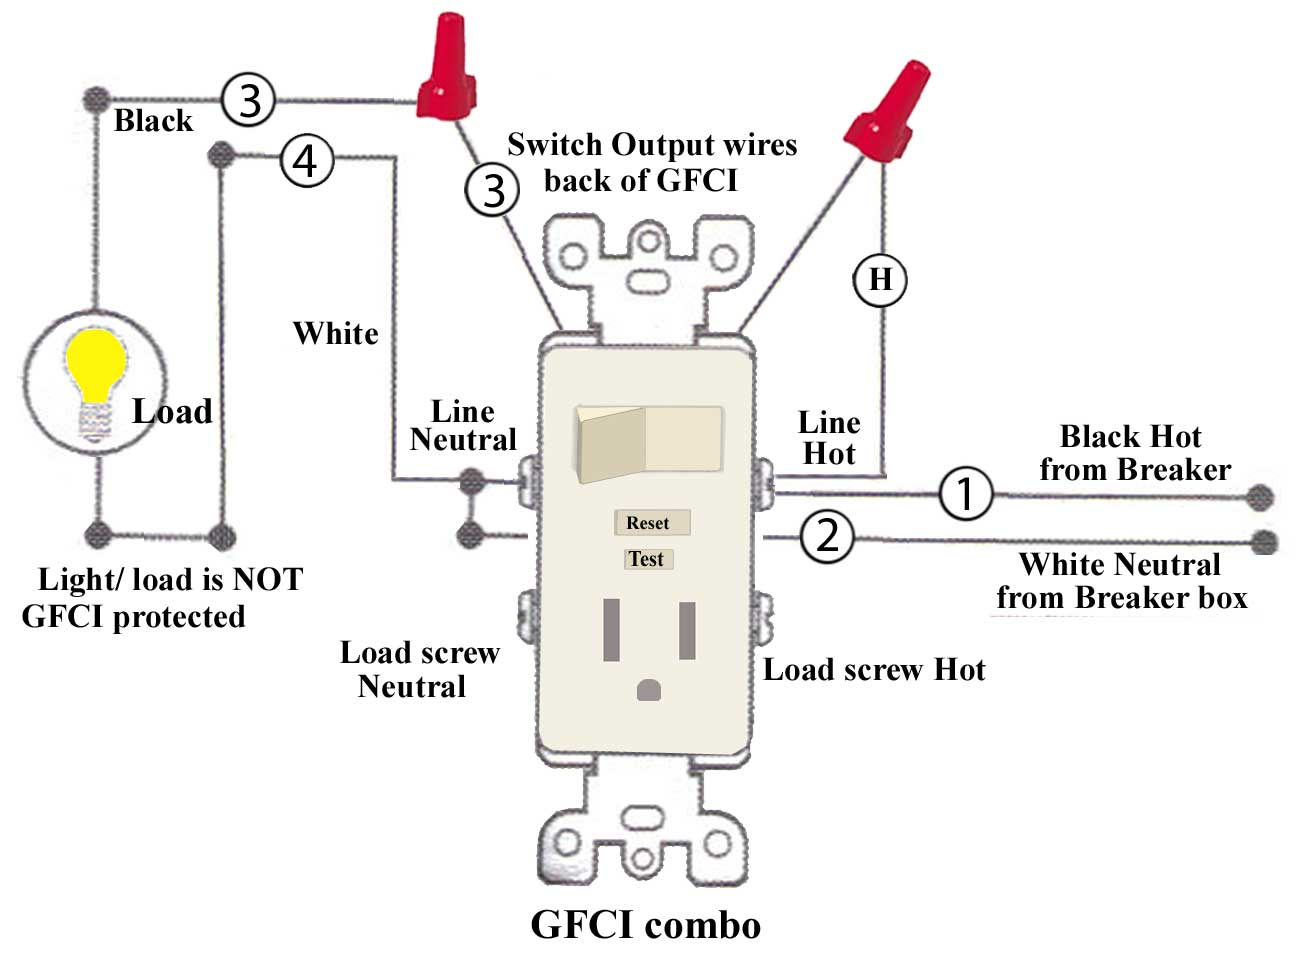 How To Install And Troubleshoot Gfci 12 2 Wiring Into Junction Box Light Schematic Larger Image